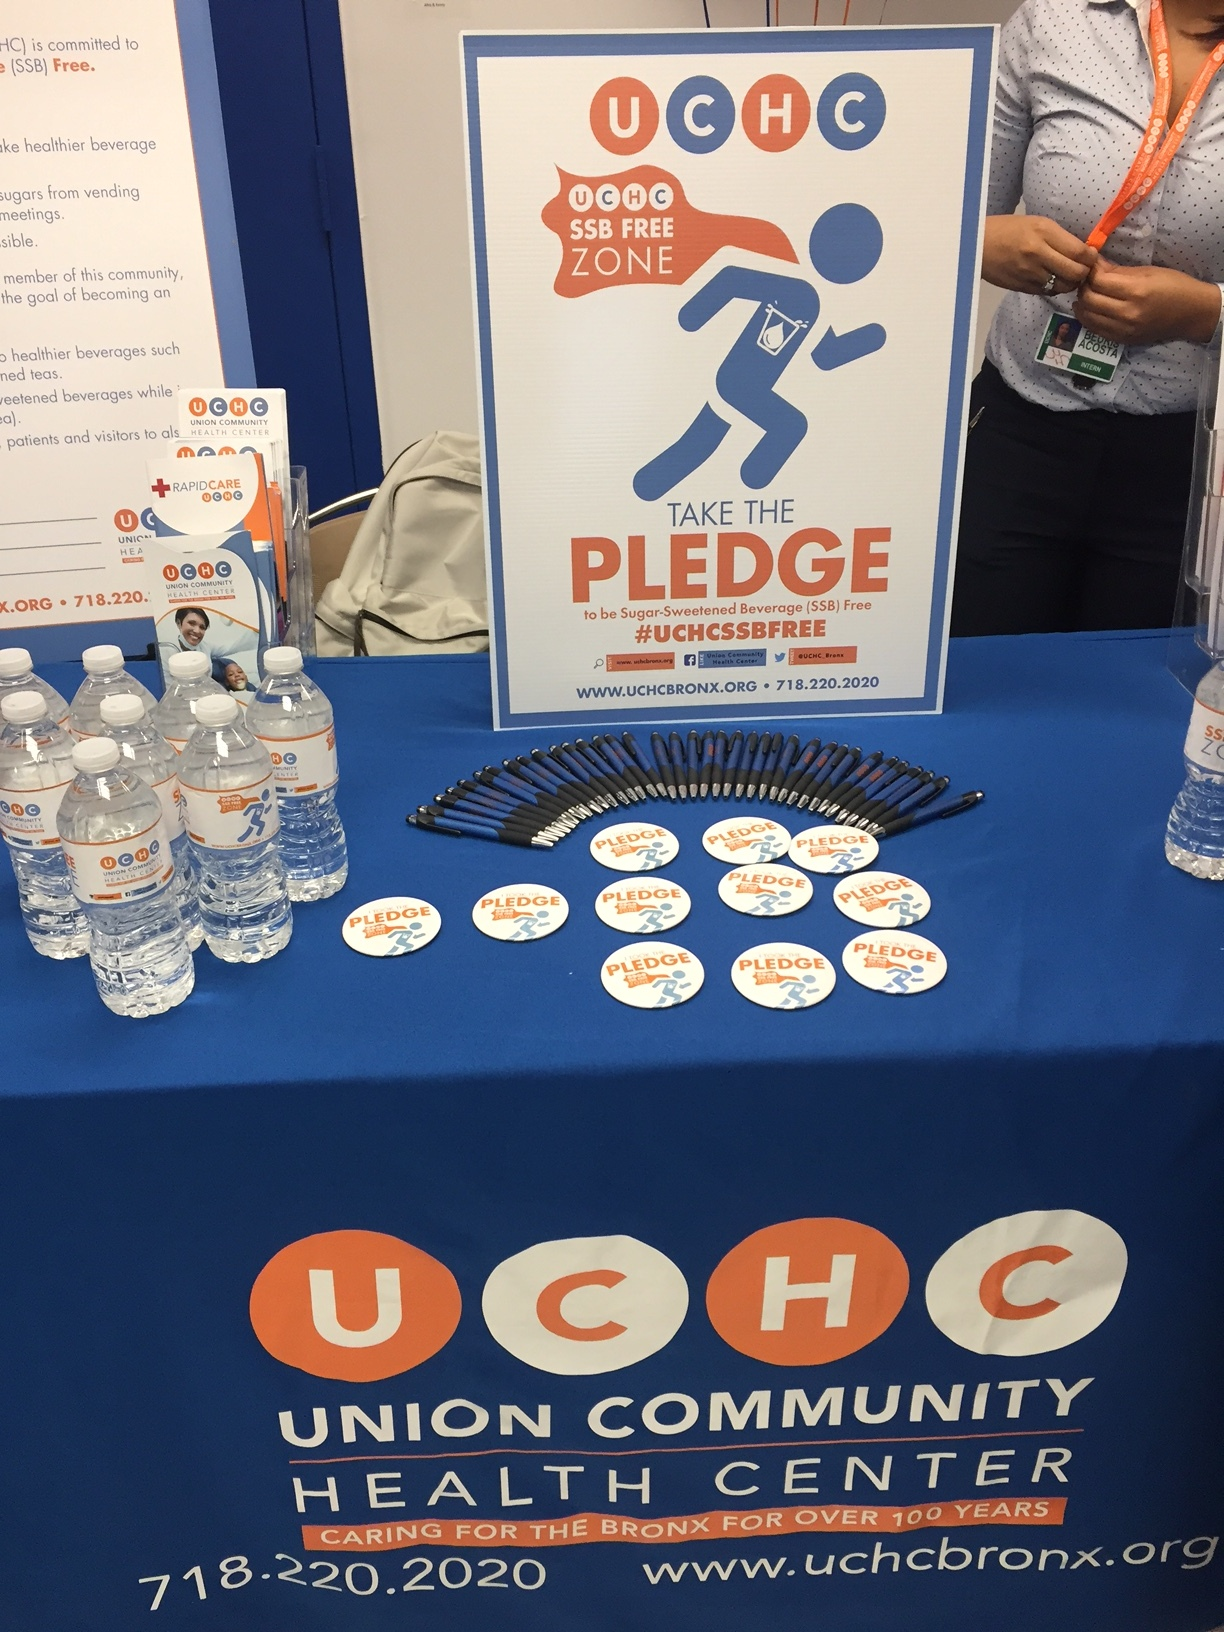 Union Health Community Center invites other organizations to take the pledge for a Healthy Beverage Zone.